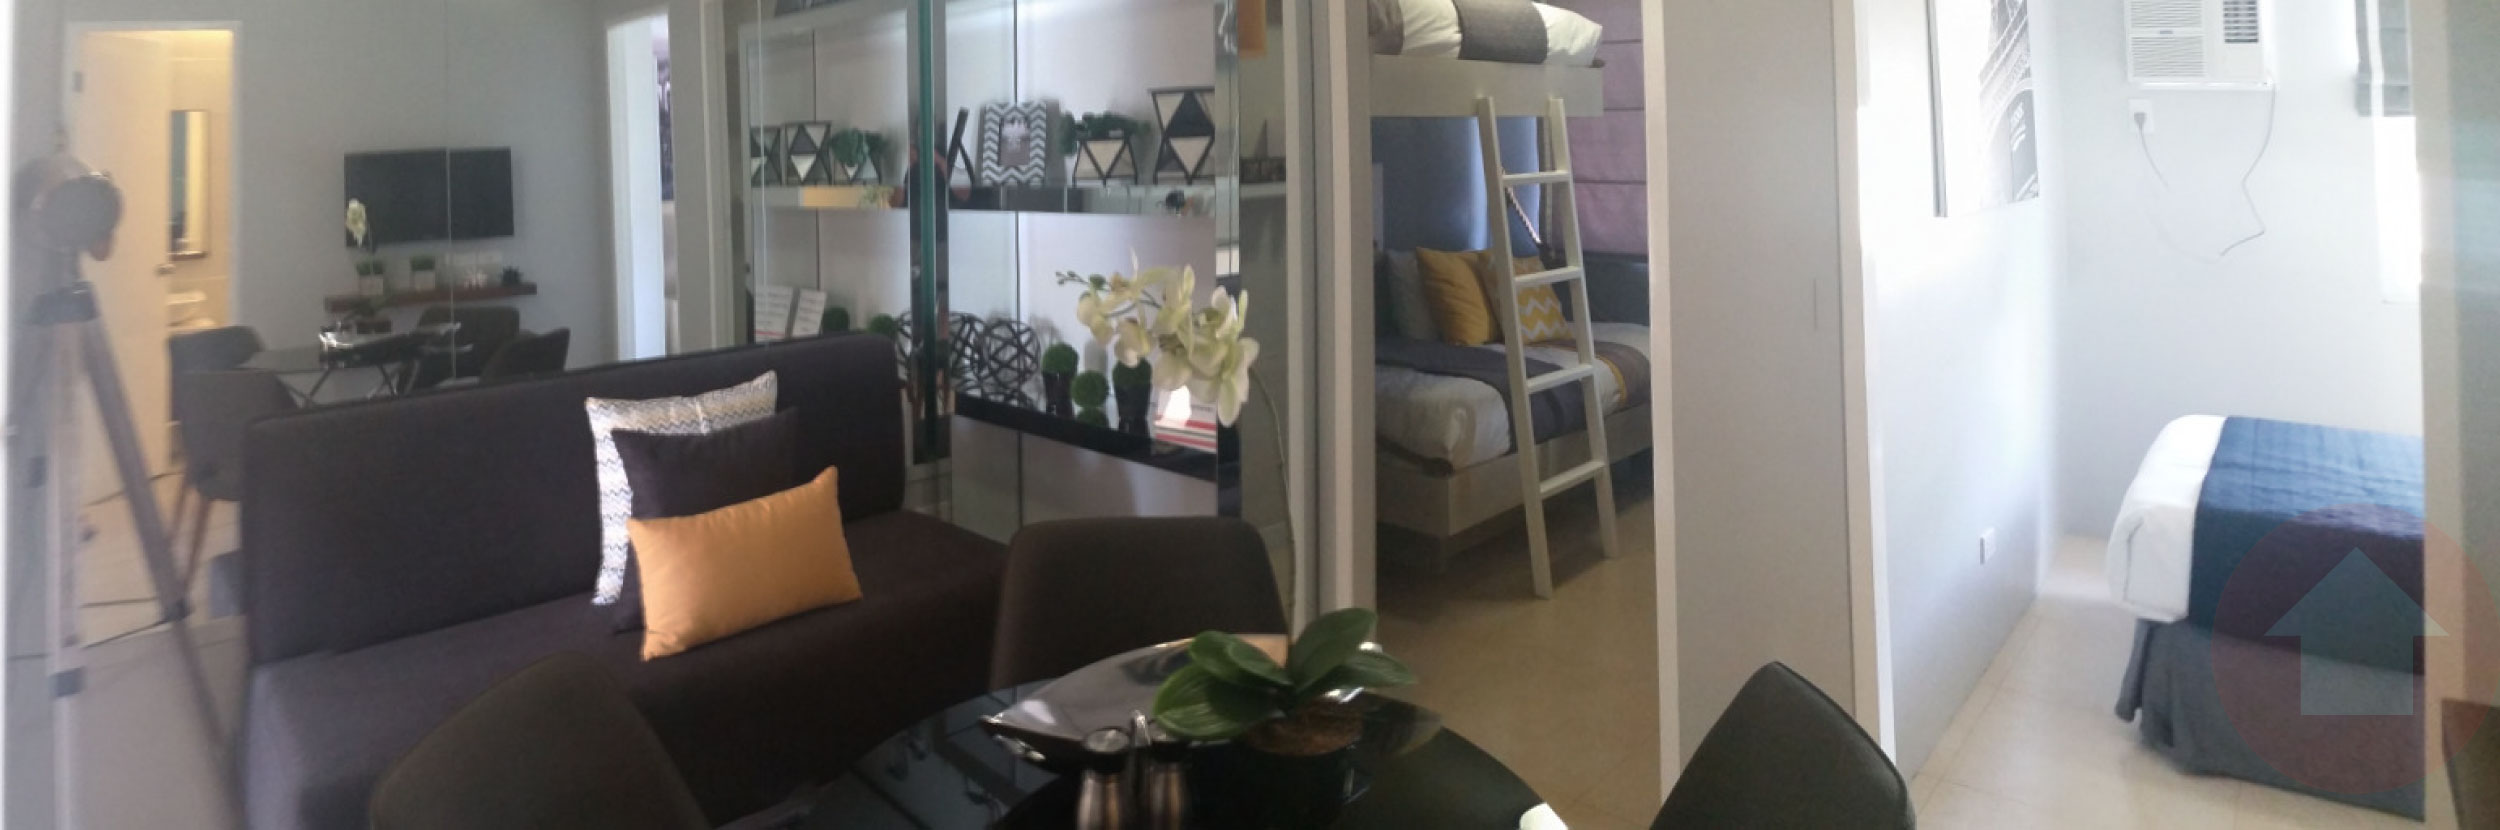 2 bedroom model unit of 8 Spatial Davao